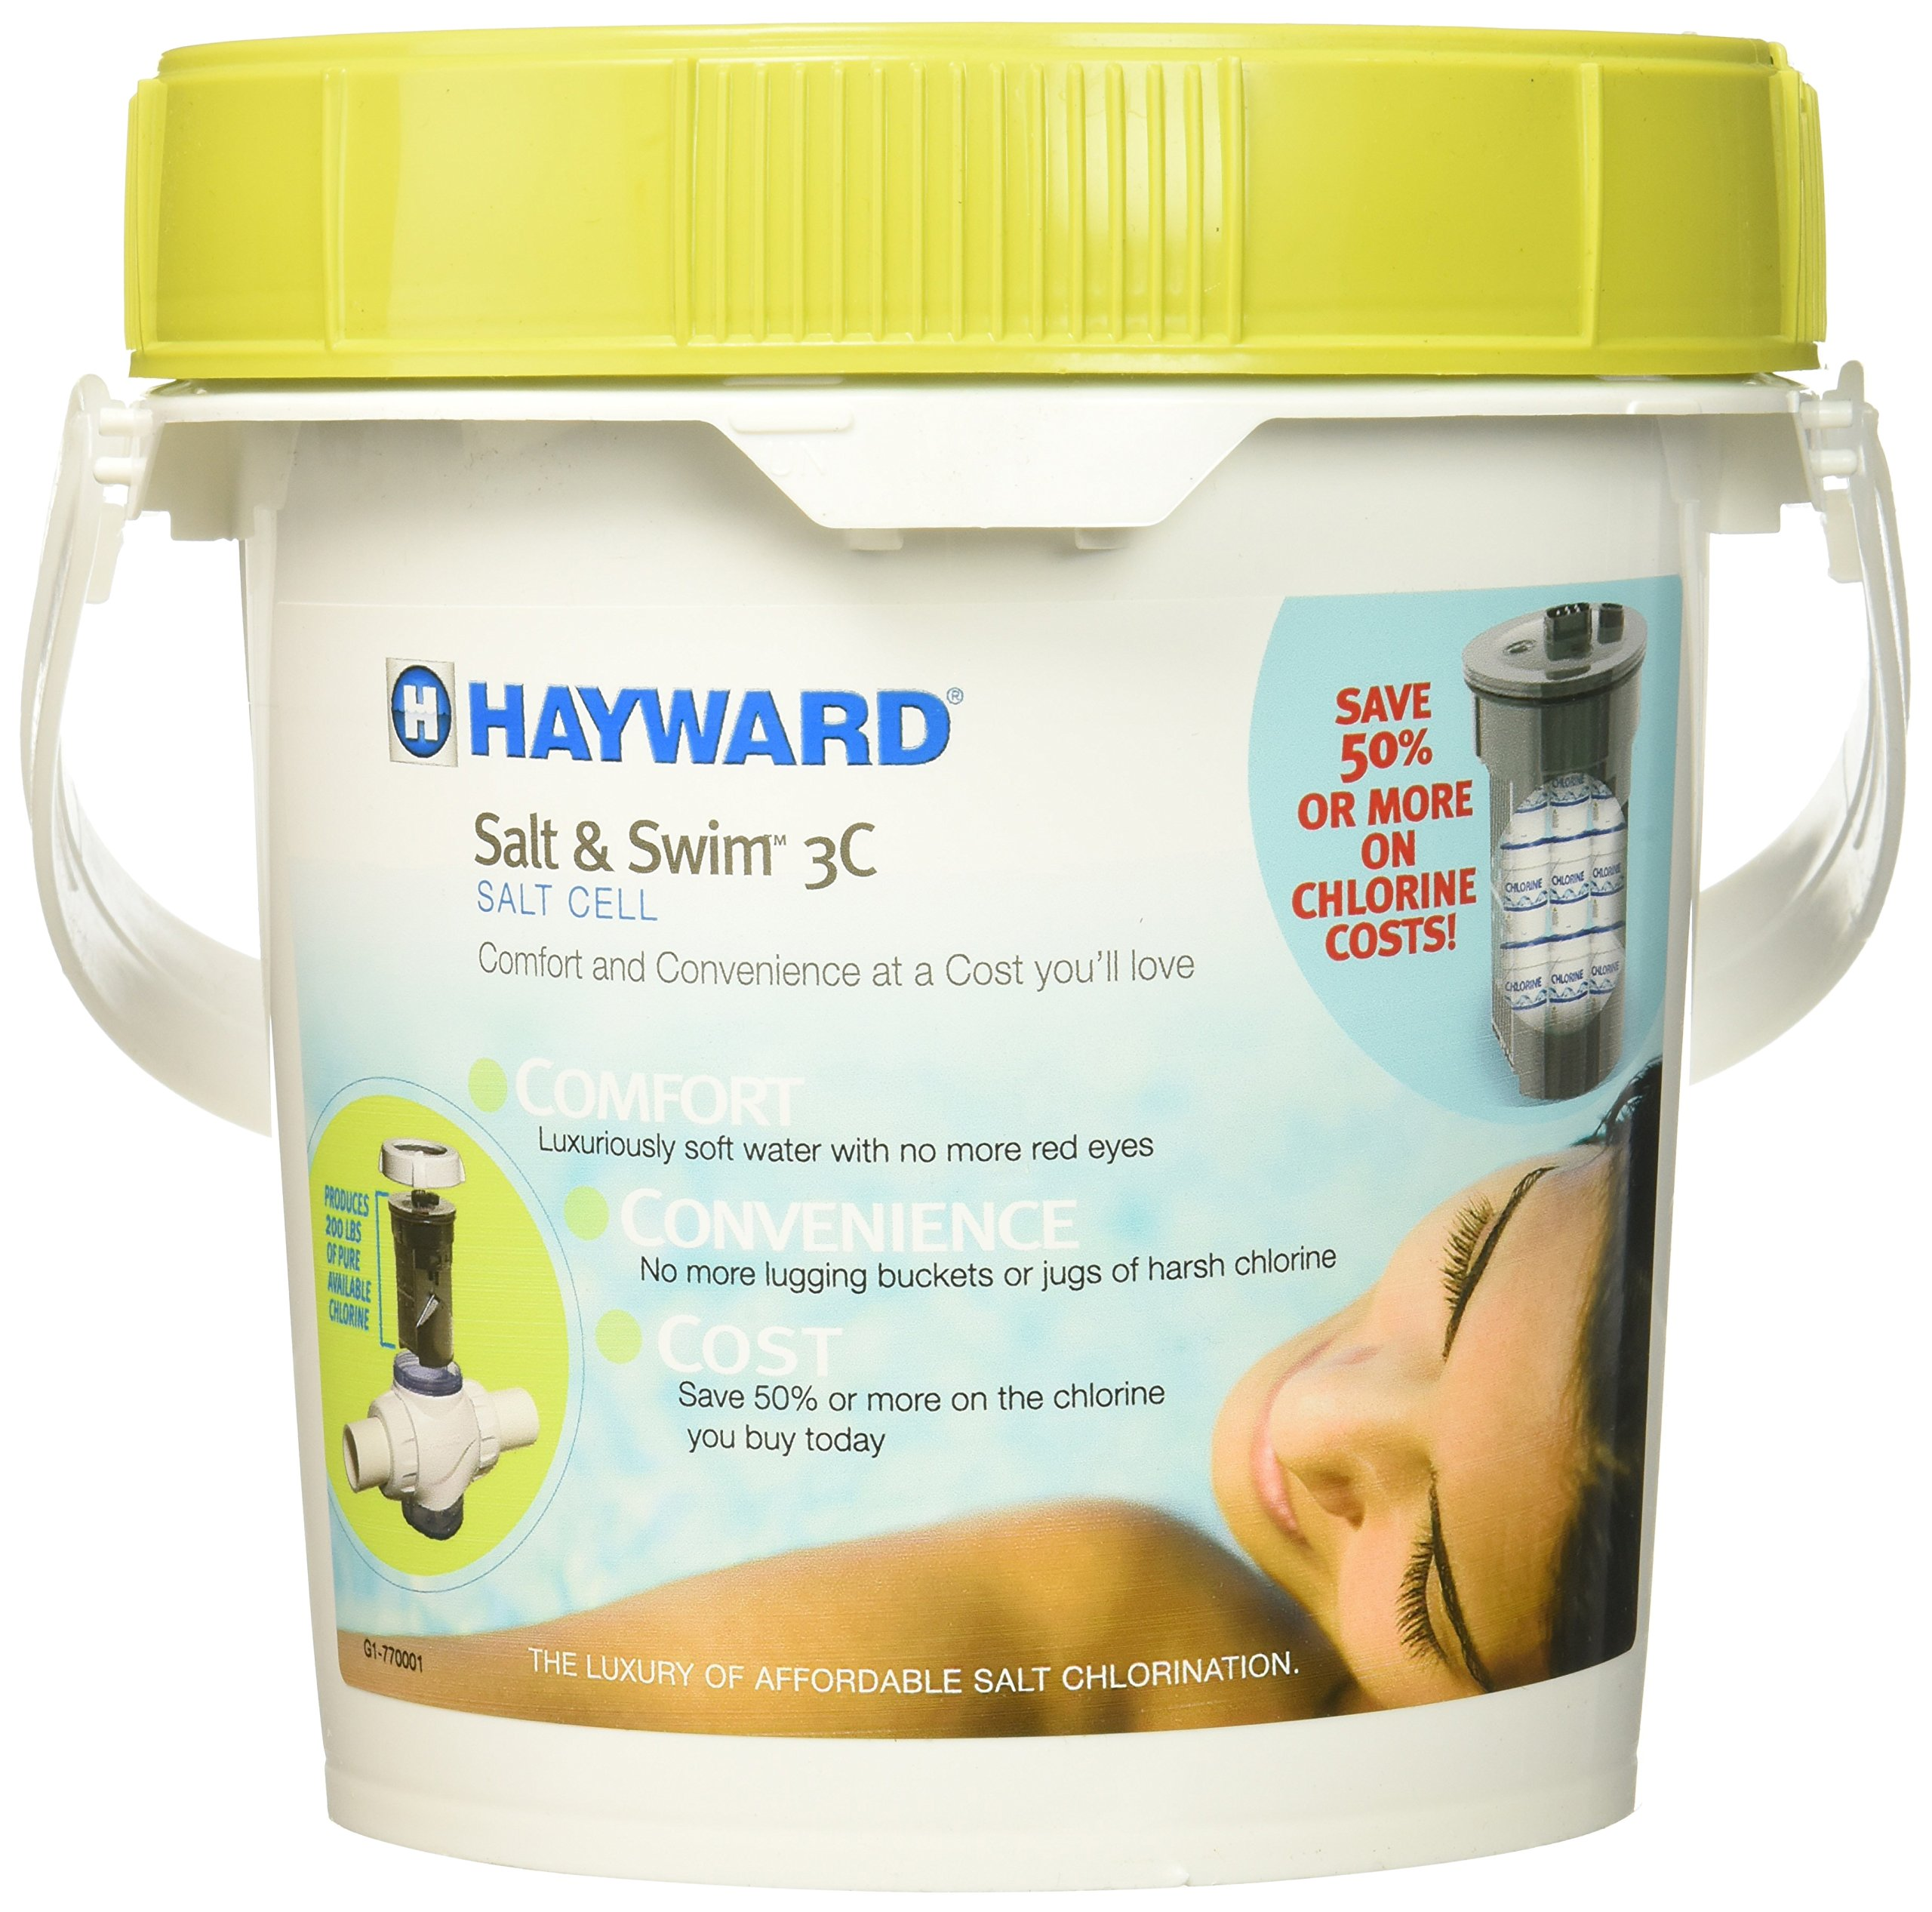 Hayward SAS-CELL Salt & Swim Salt Chlorination Cell for In-Ground Swimming Pools by Hayward